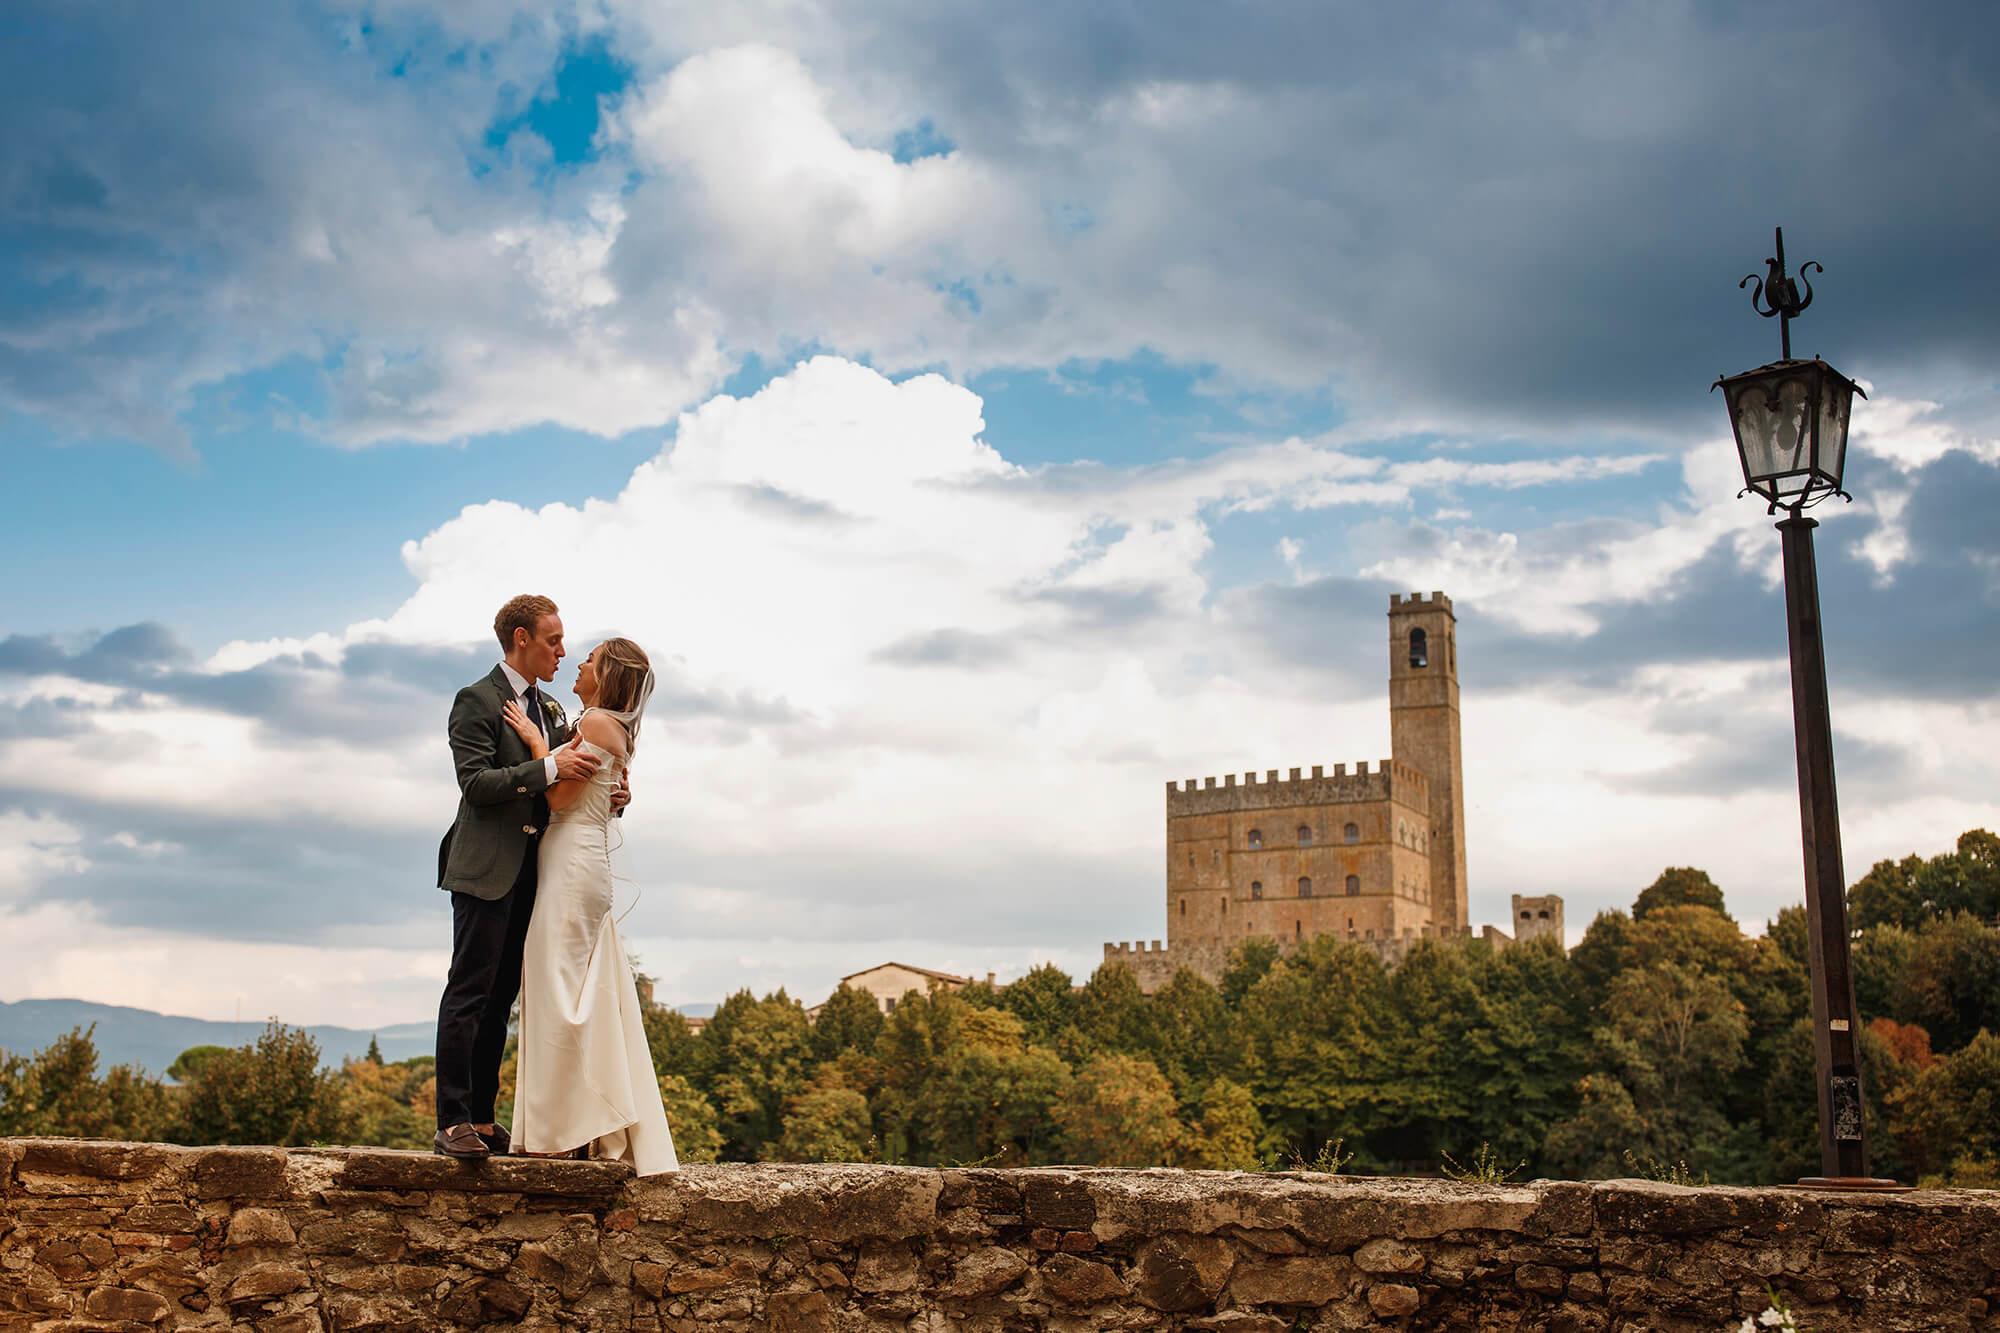 Poppi wedding tuscany